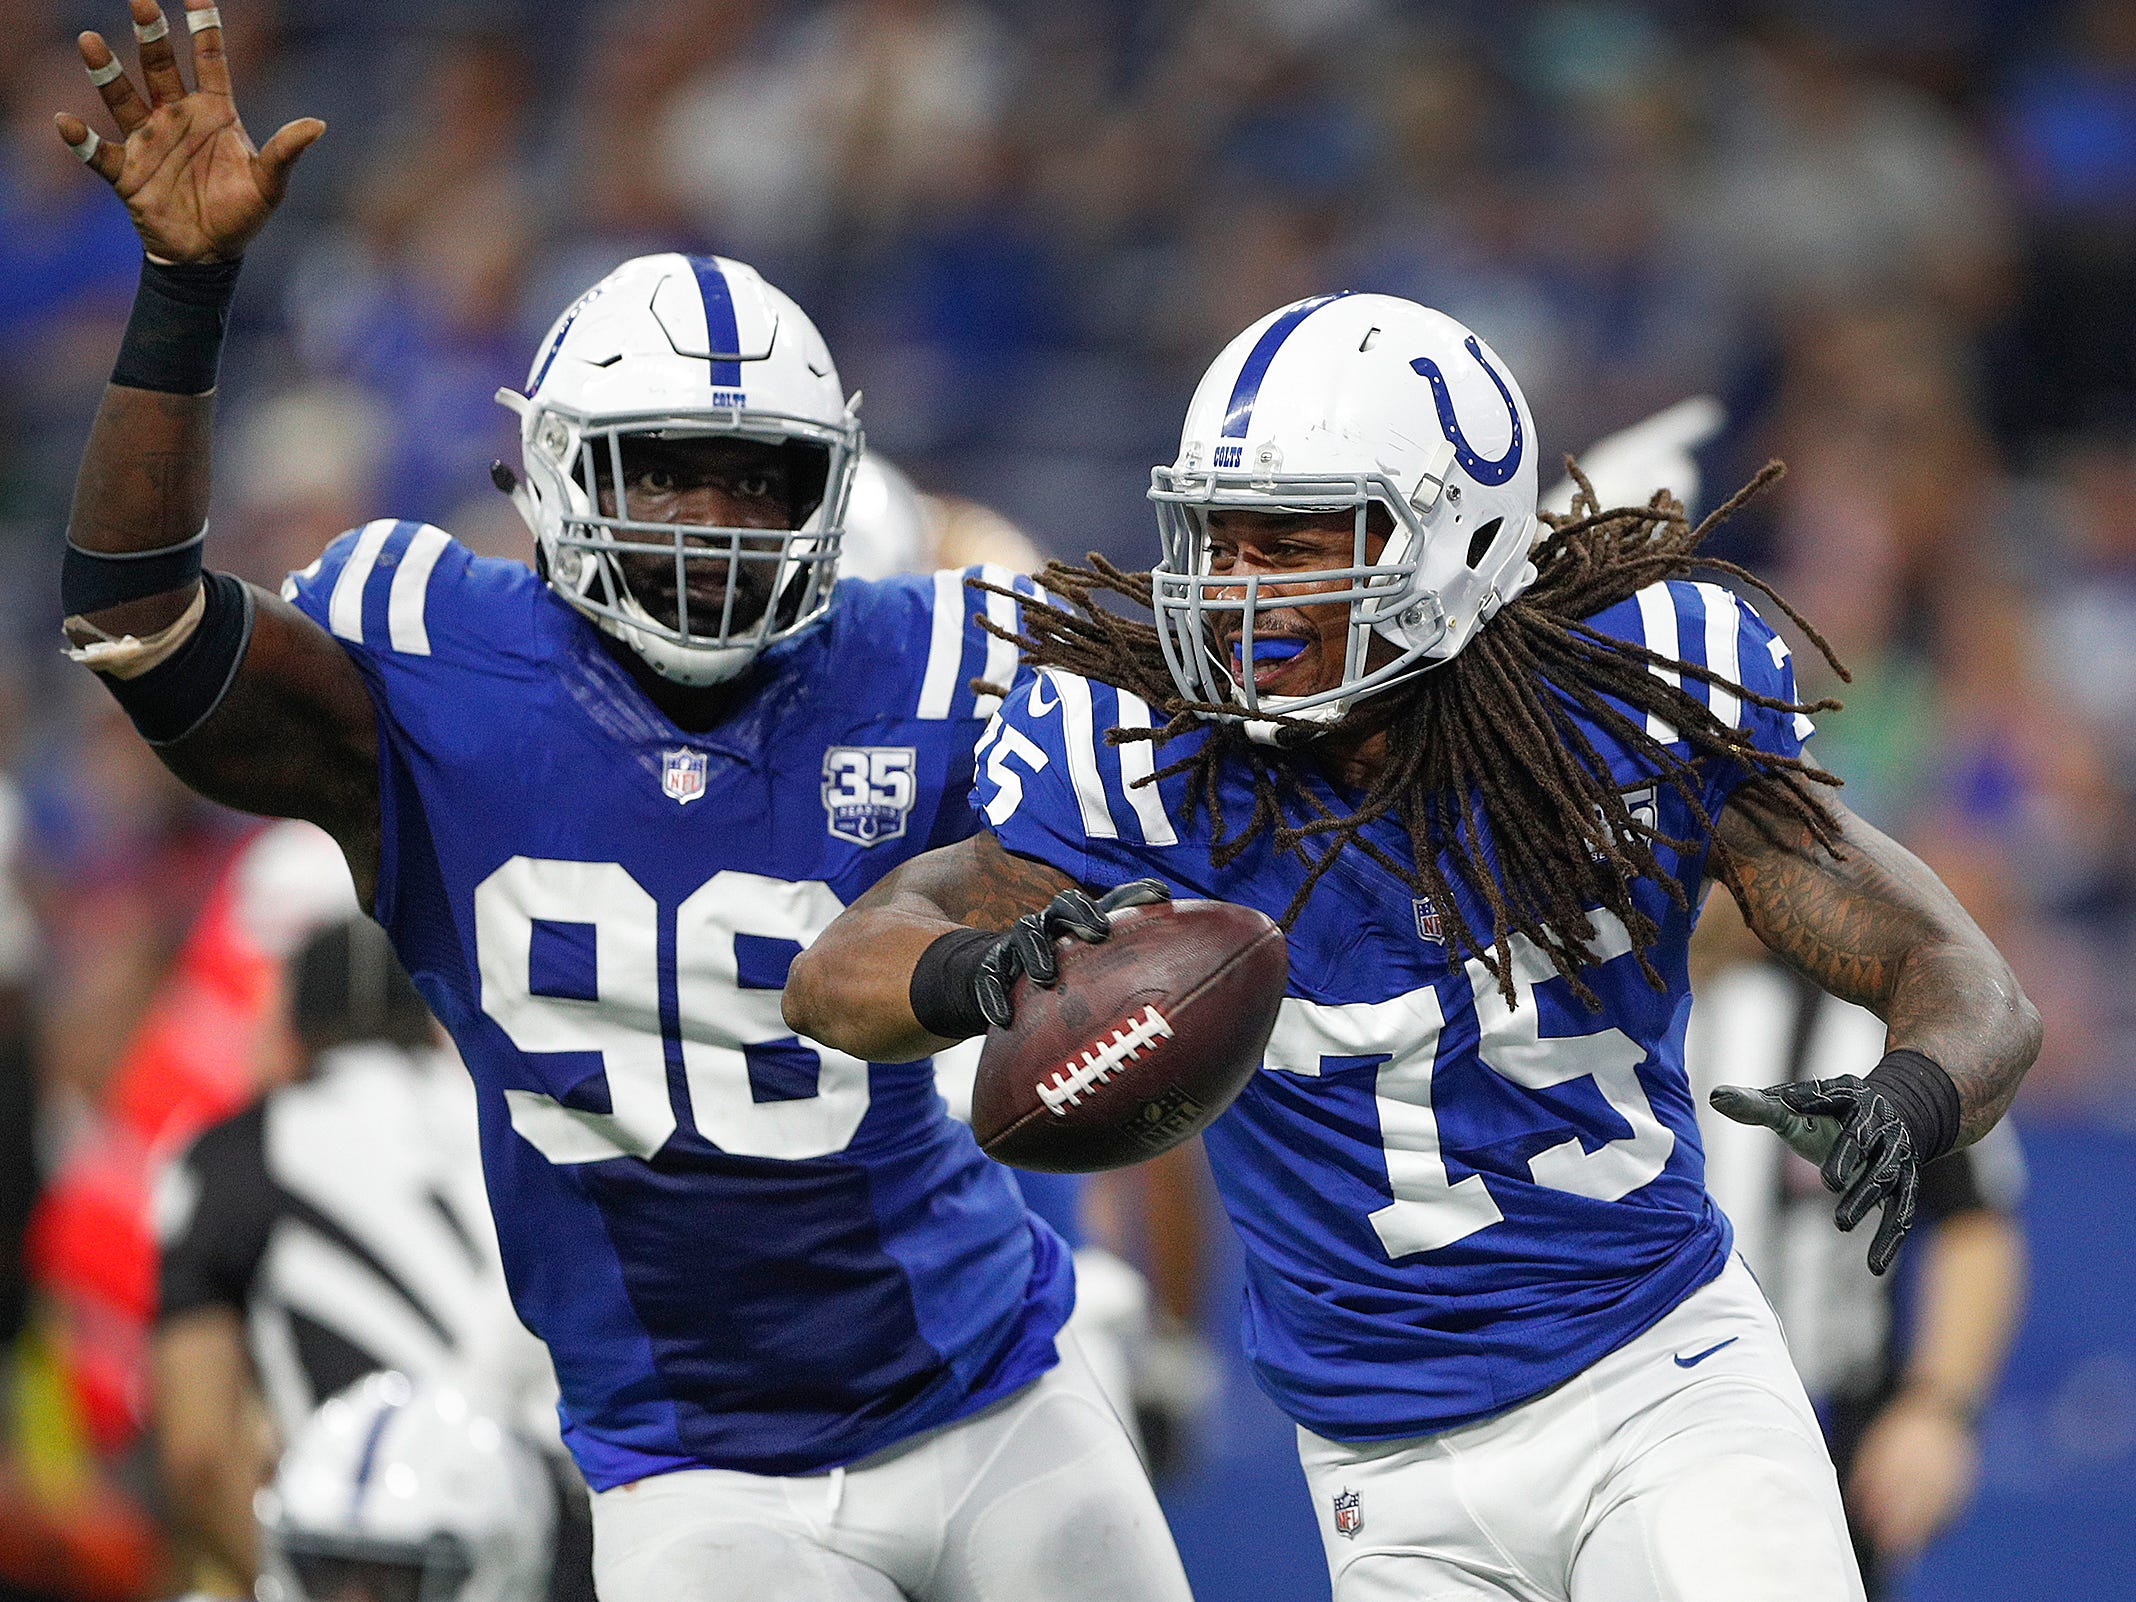 Indianapolis Colts defensive tackle Ryan Delaire (75) celebrates his fumble recovery in the second half of their preseason football game at Lucas Oil Stadium Saturday, August 25, 2018. The Colts defeated the 49ers 23-17.